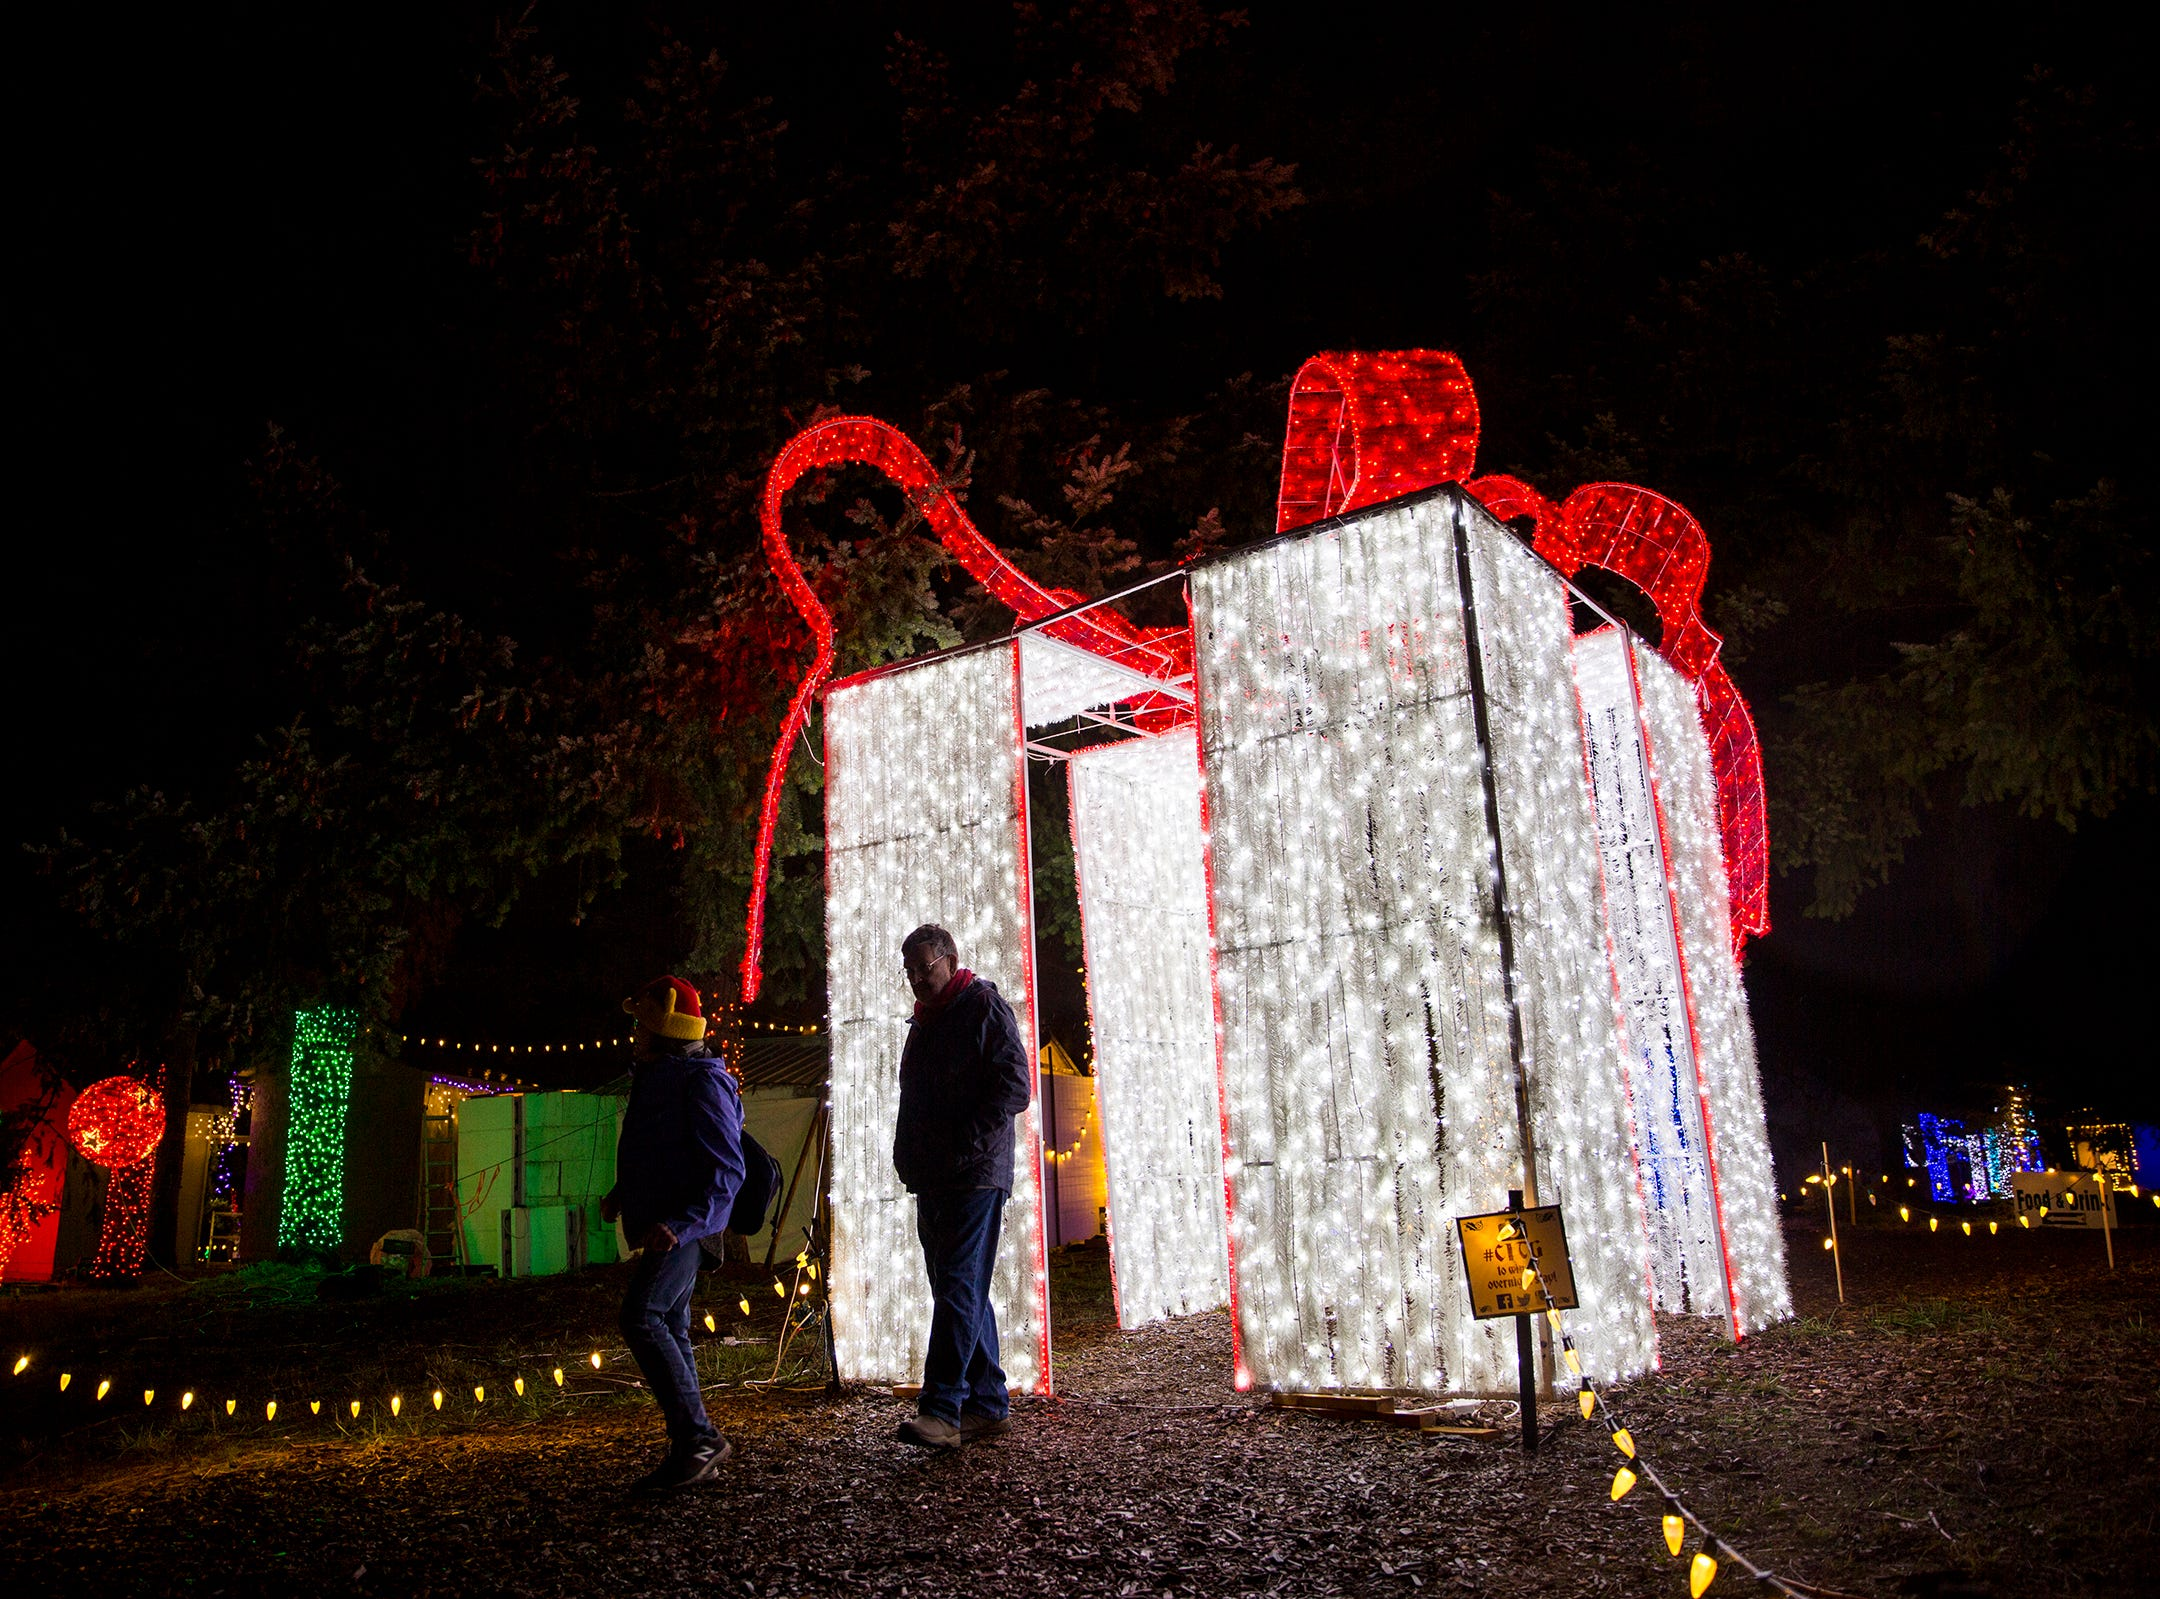 Christmas in the Garden is set up at the Oregon Garden Resort on Wednesday, Nov. 28, 2018, in Silverton. The winter wonderland, which features one million lights, is on display through Dec. 31.